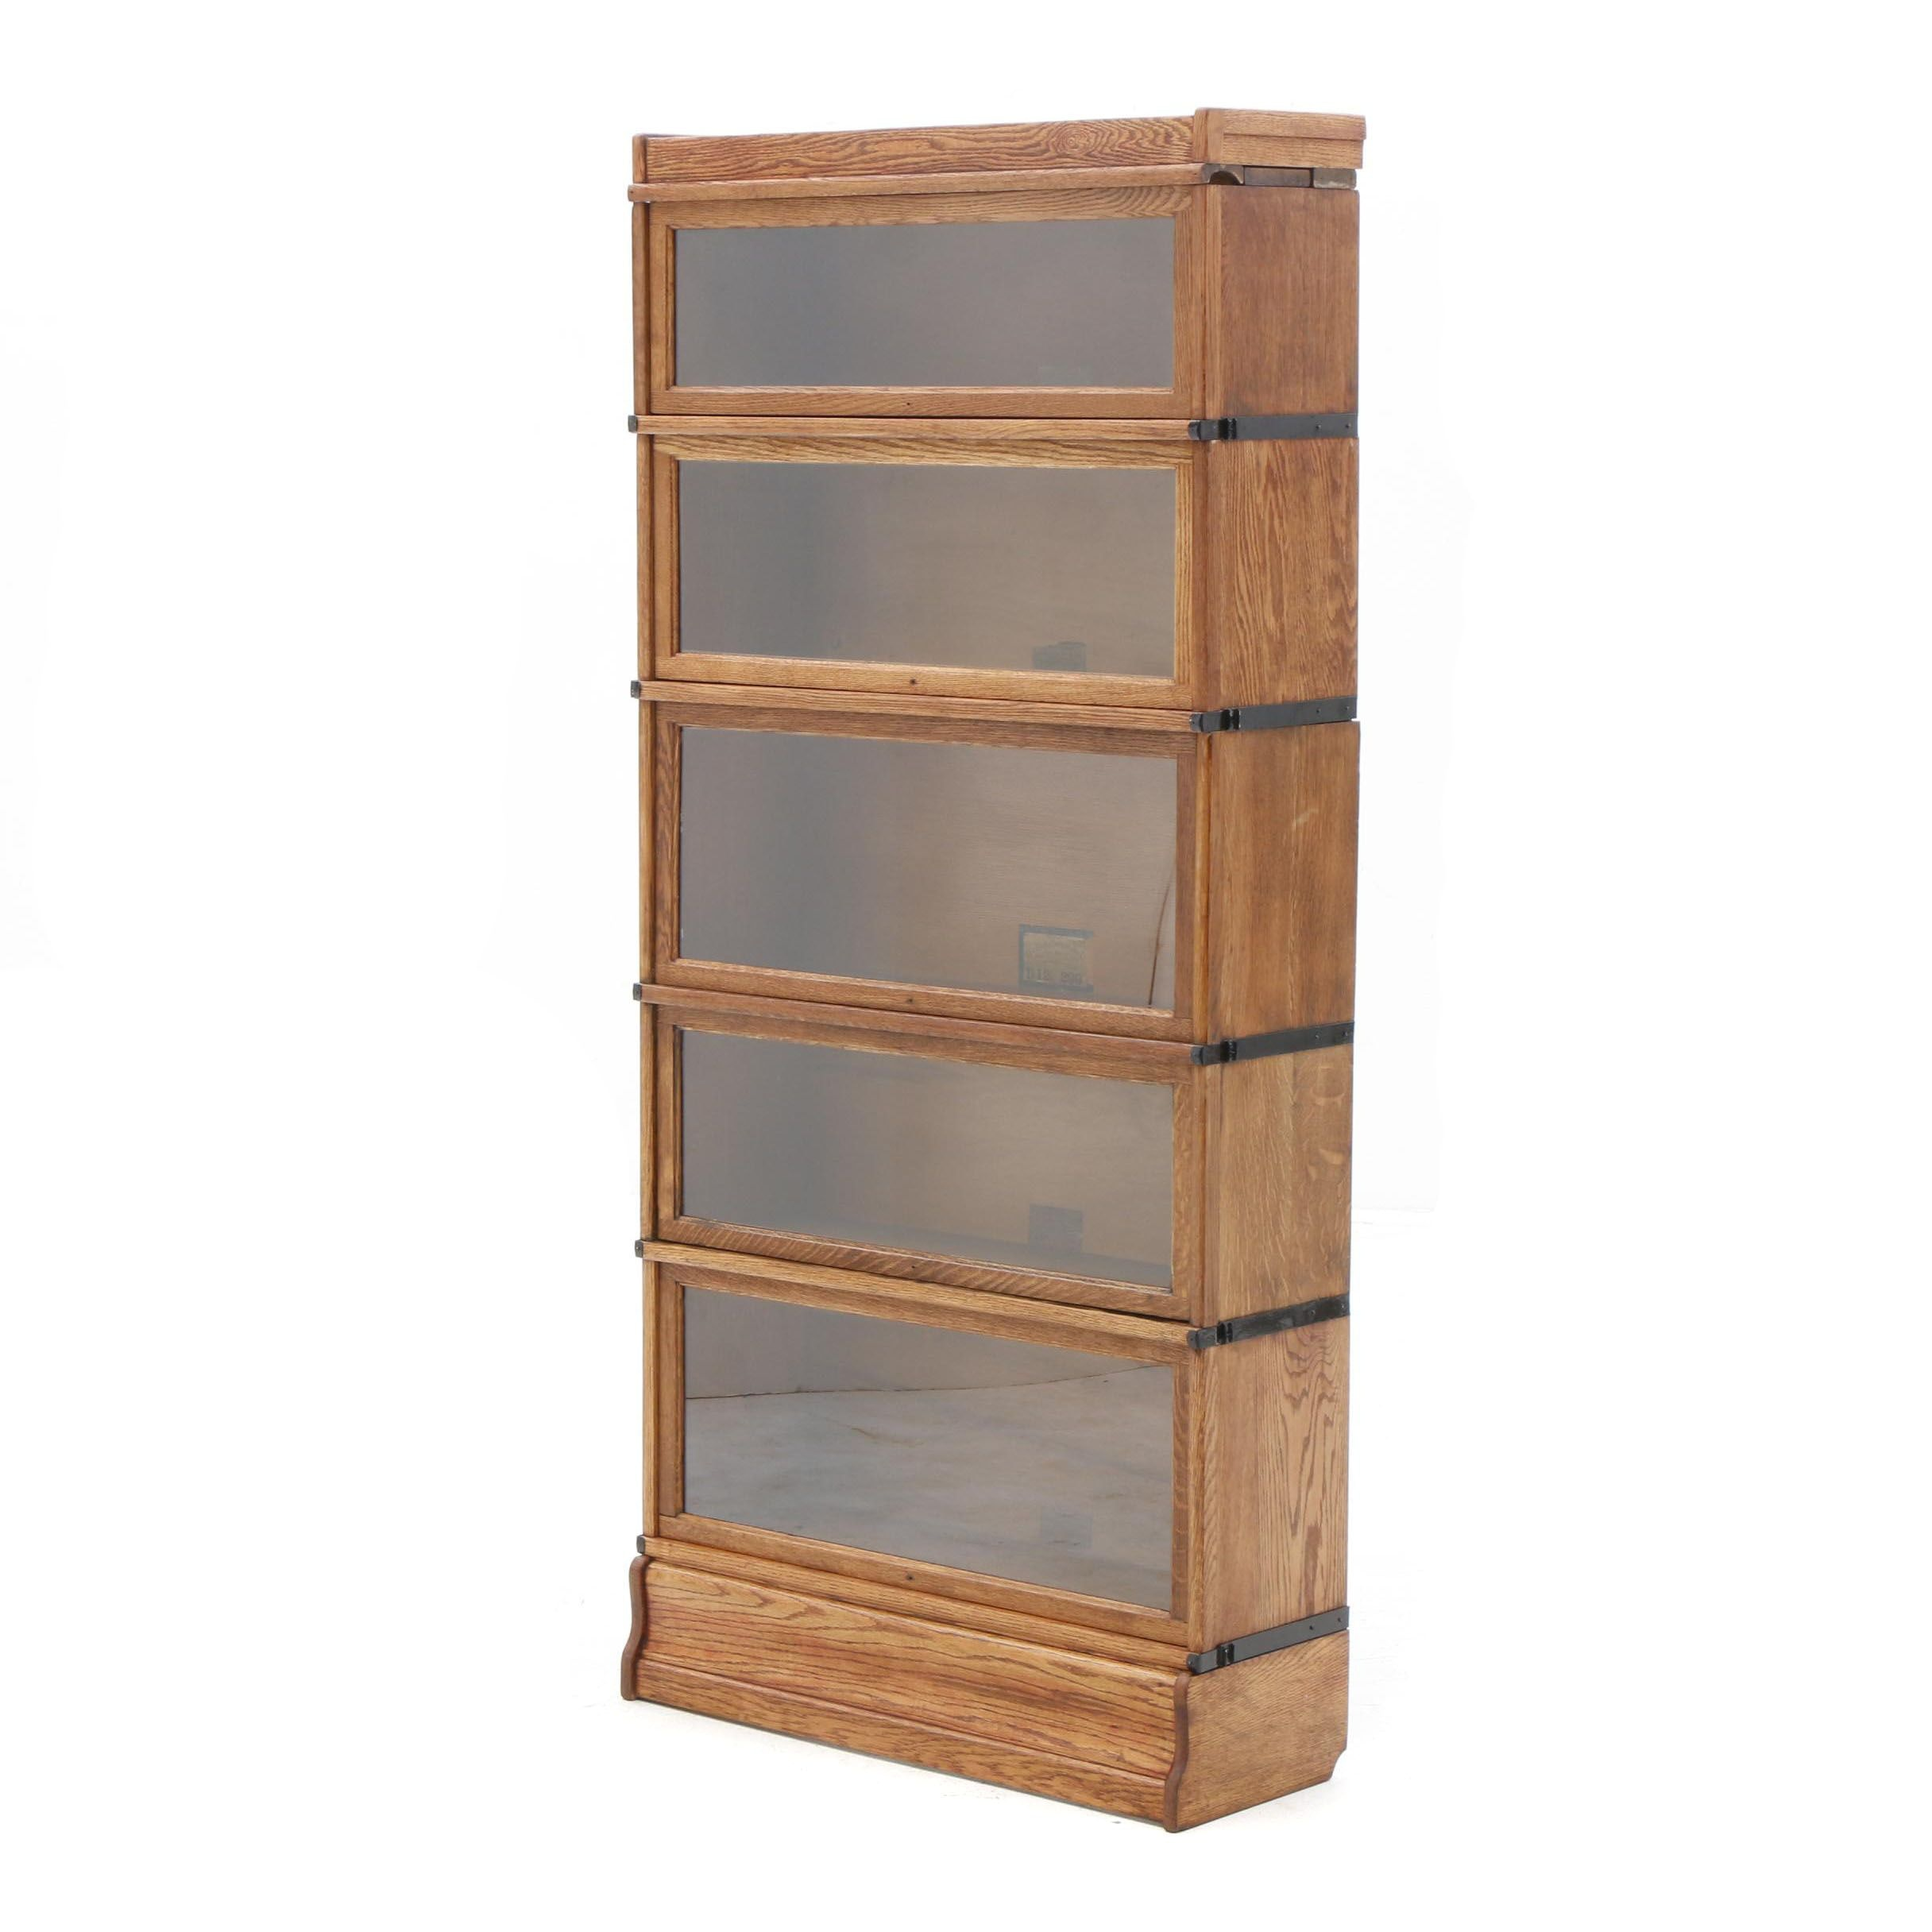 1920s-1930s Sectional Barrister Bookcase by Globe-Wernicke